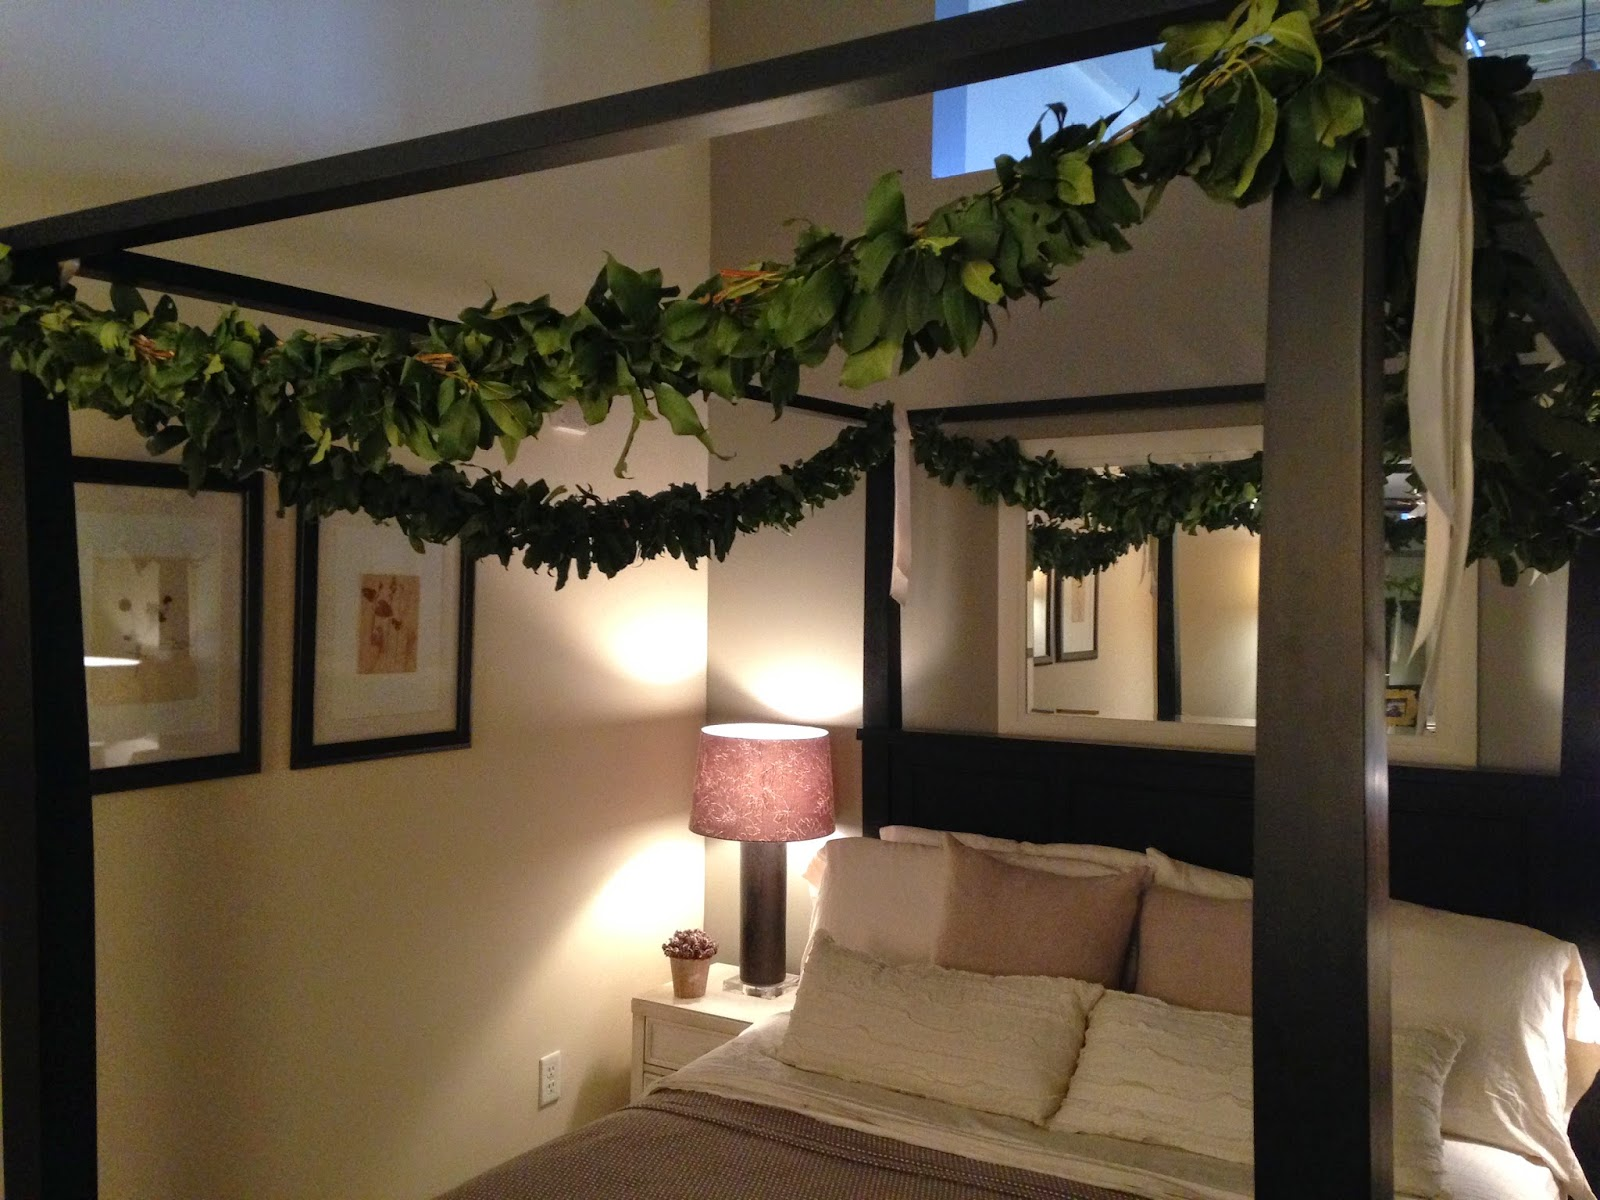 les fleurs : loft bedroom : 4 poster bed : garland on bed : laurel garland : christmas decorating